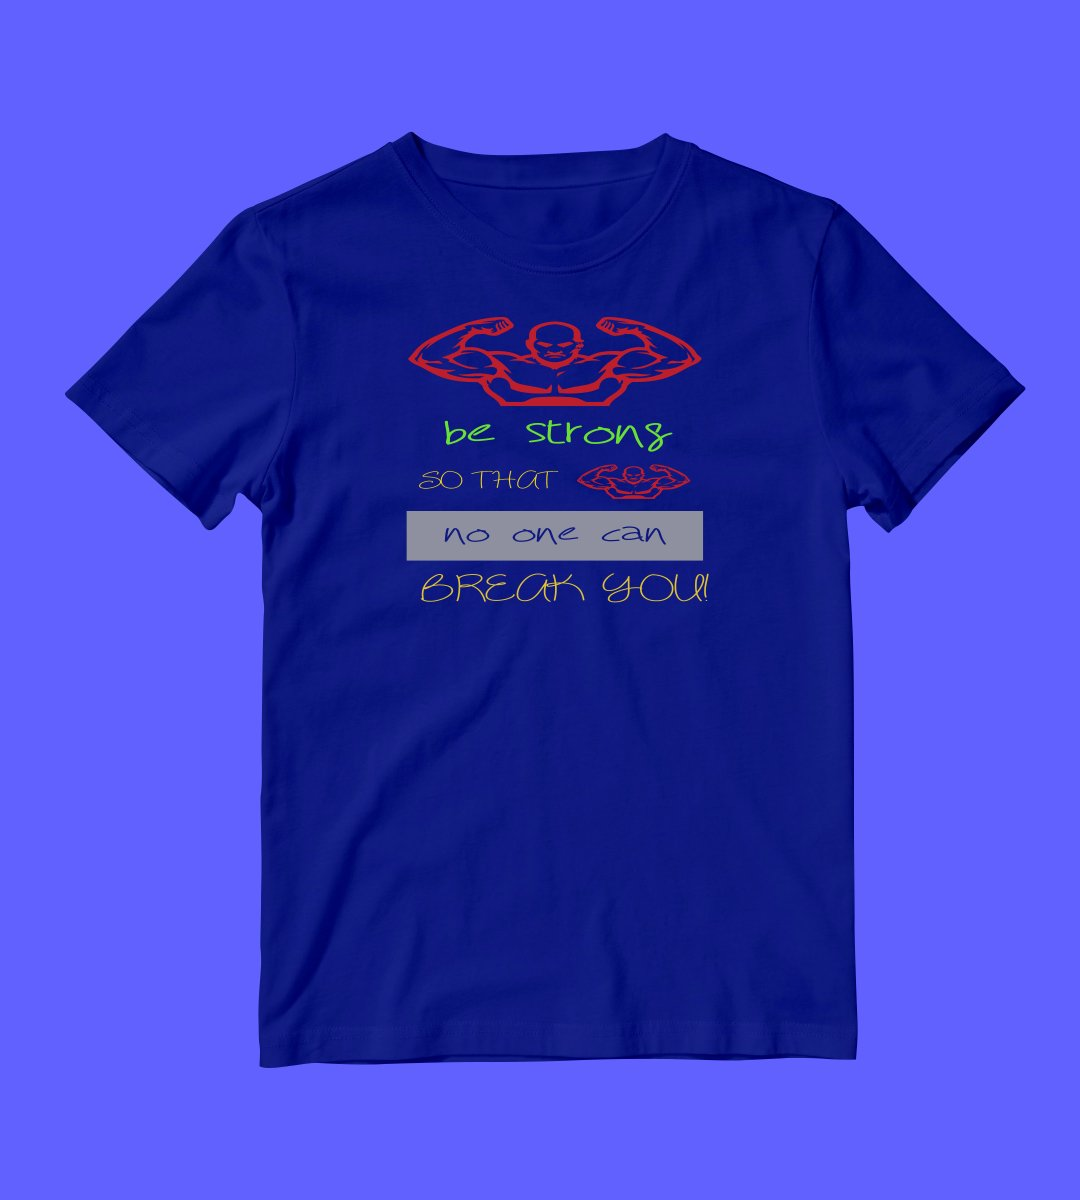 For your #T_shirt design you can just click here  link: #PitMad #askASHE #WandaVisionFinale #AskStVincent #BTSNo1GlobalArtist #SpaceJam #JeromePowell #Neanderthals #OUTRAGED #Tidal #Pyra #Duquesne #PartyDown #QAnonShaman #BenRoethlisberger